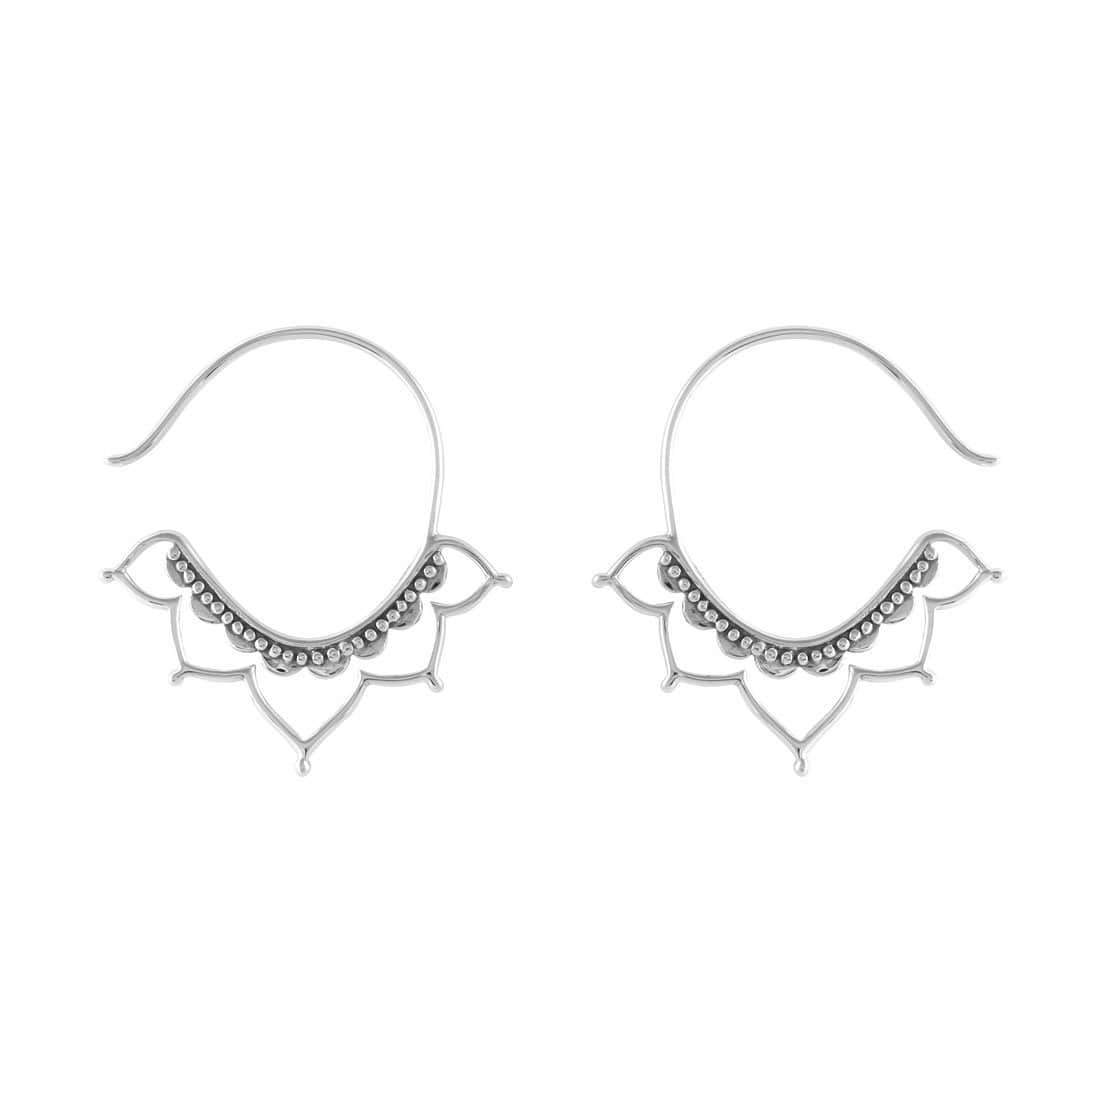 Midsummer Star Earrings Templum Hoops